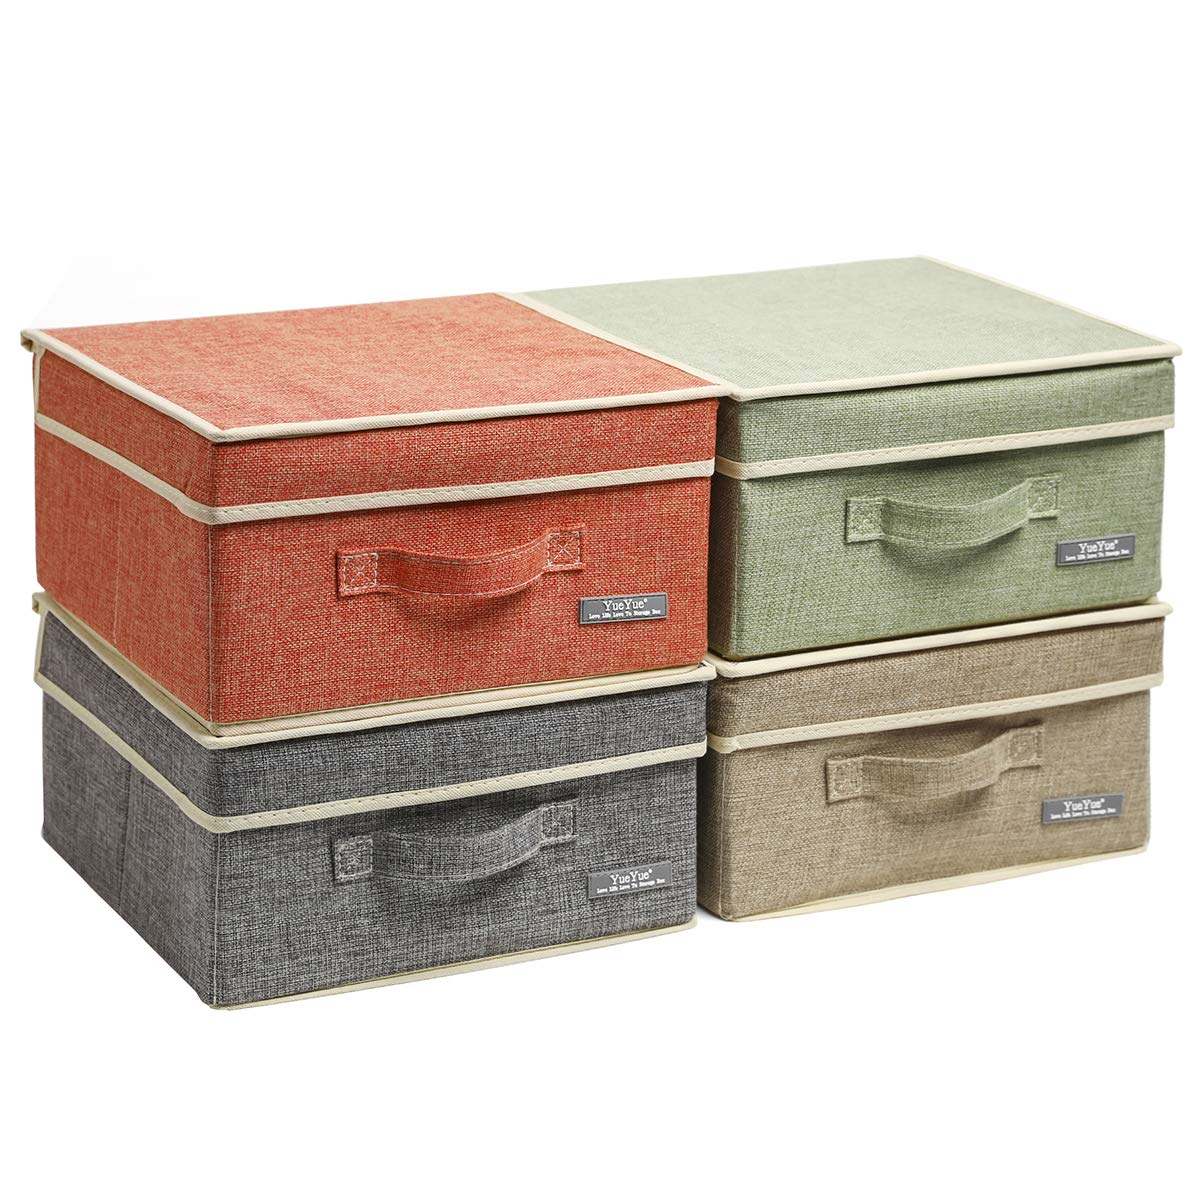 YueYue Small 4 Pack Fabric Stroage Box with Lids, Linen Foldable Stroage Box with lids 4 Color Set 12.4in/12in/6.7in by YueYue